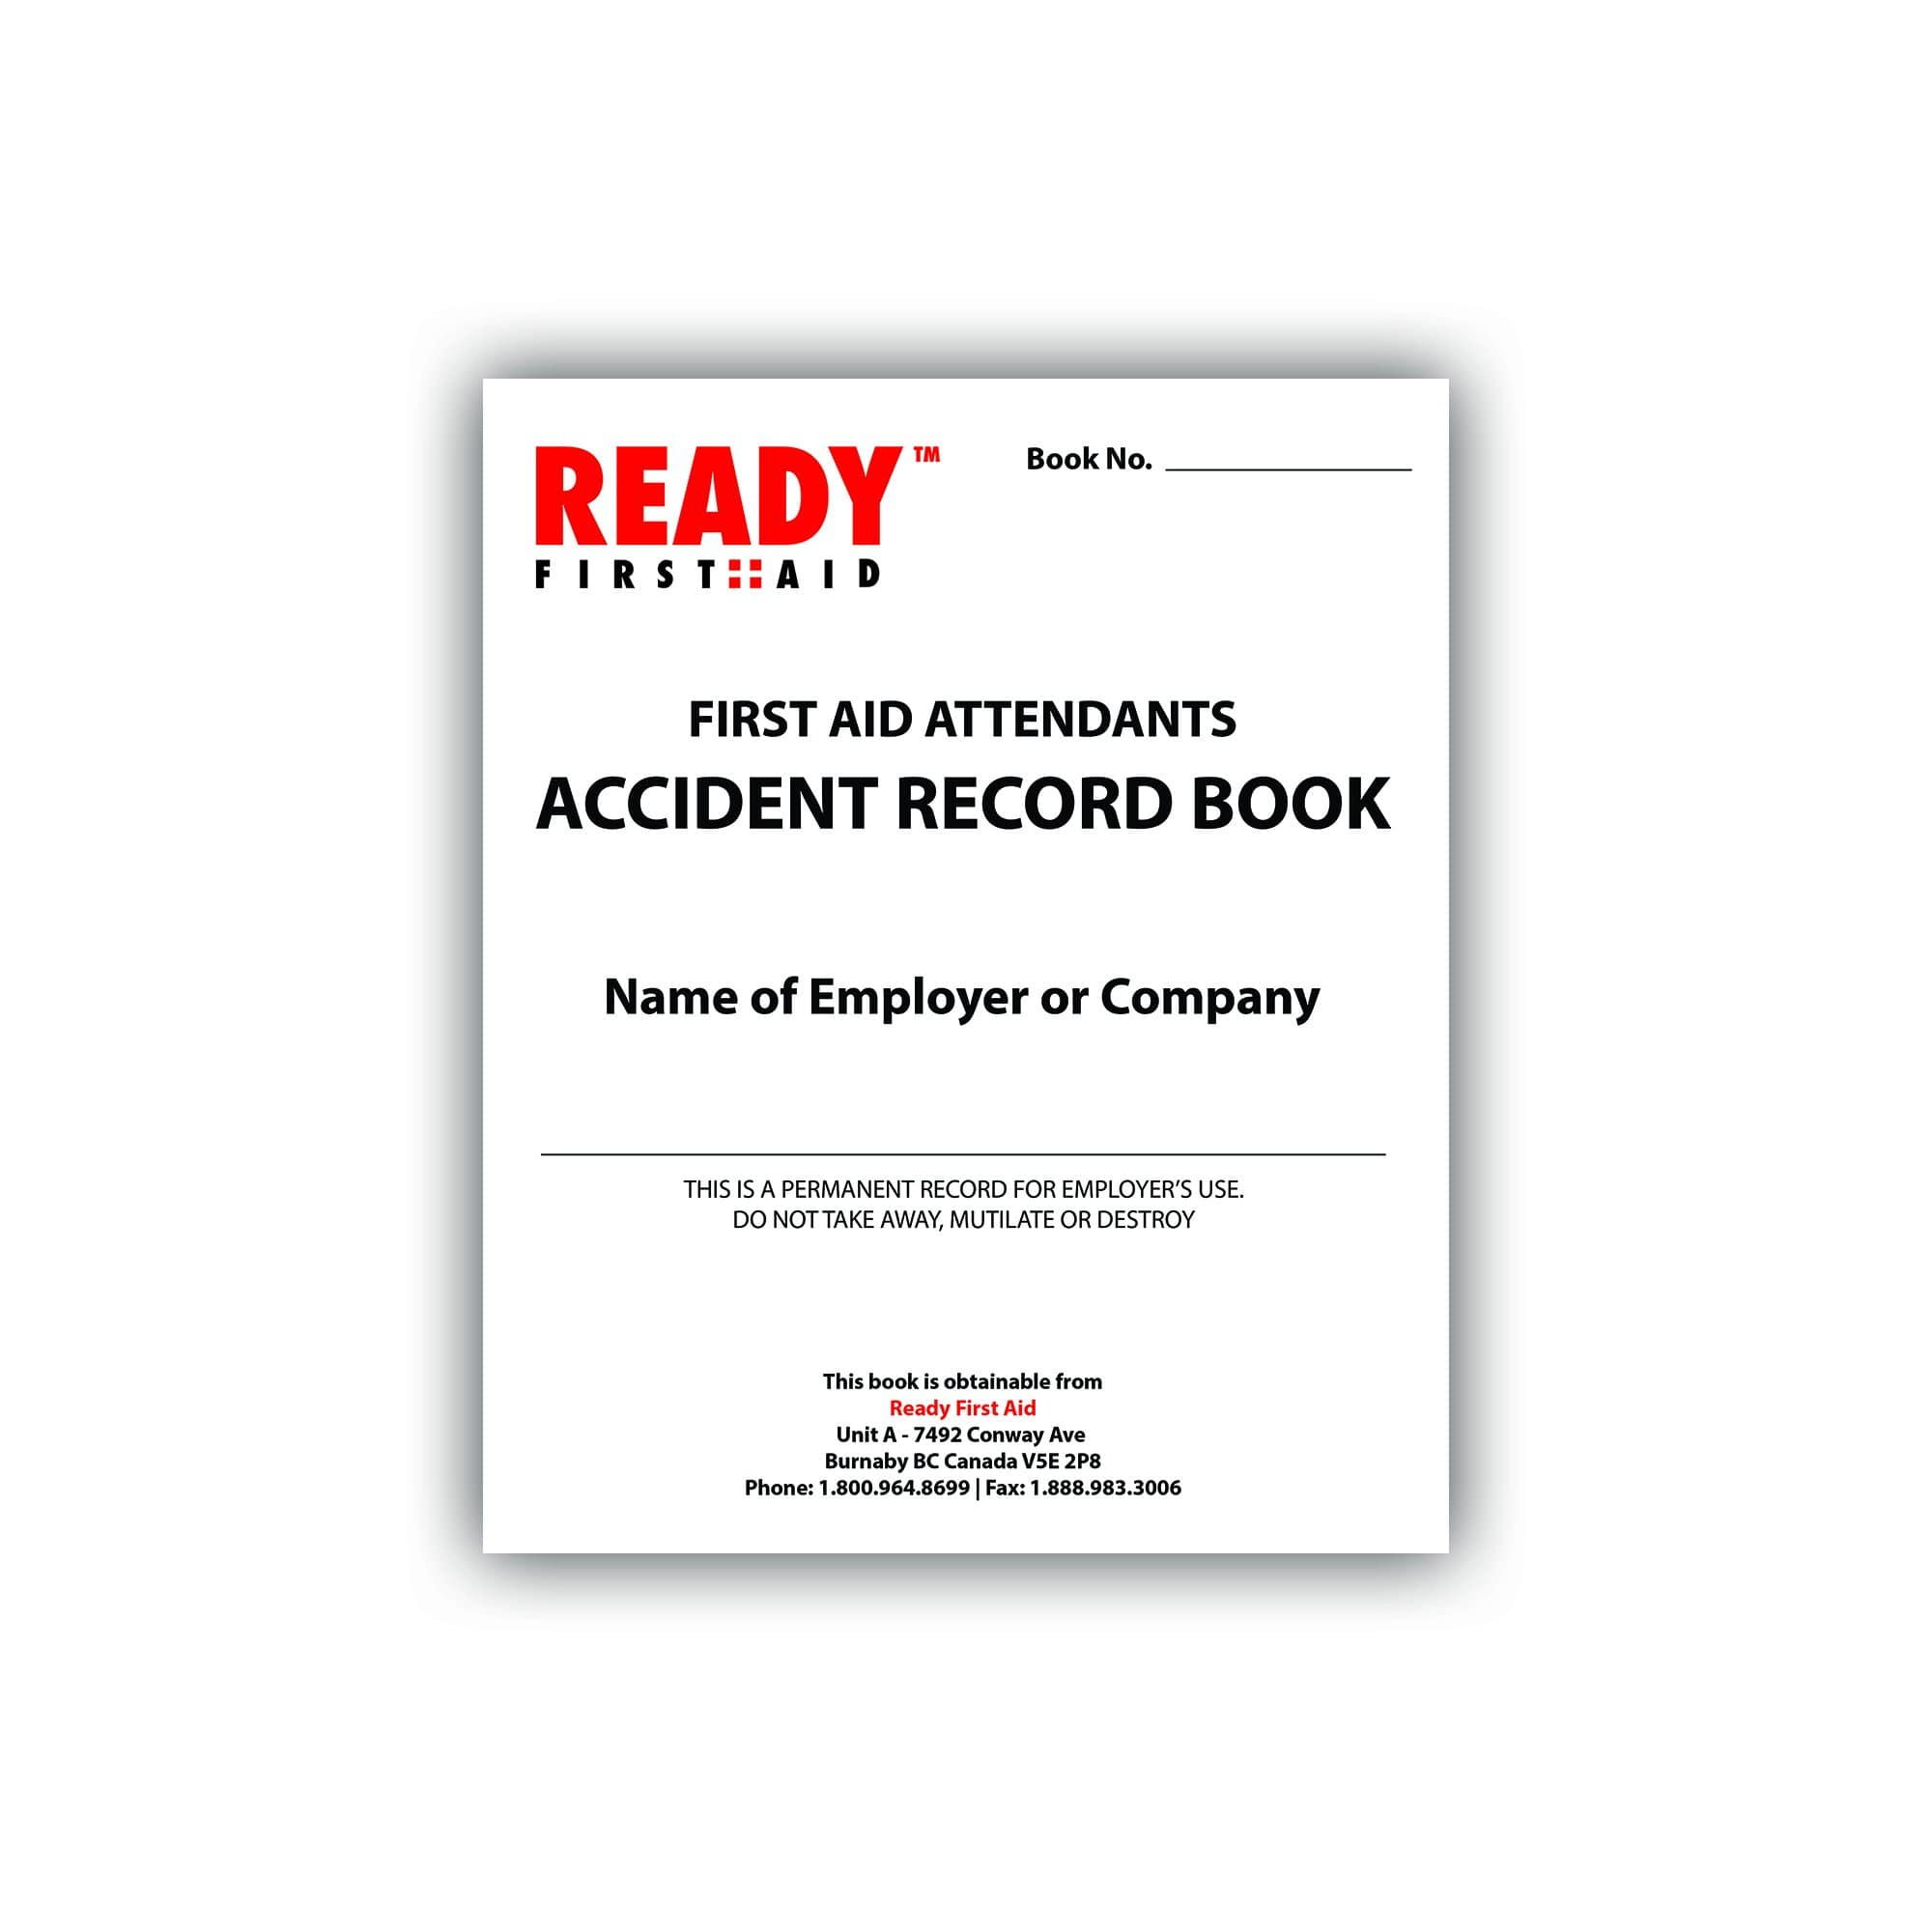 Accident Record Book 12pgs - Ready First Aid